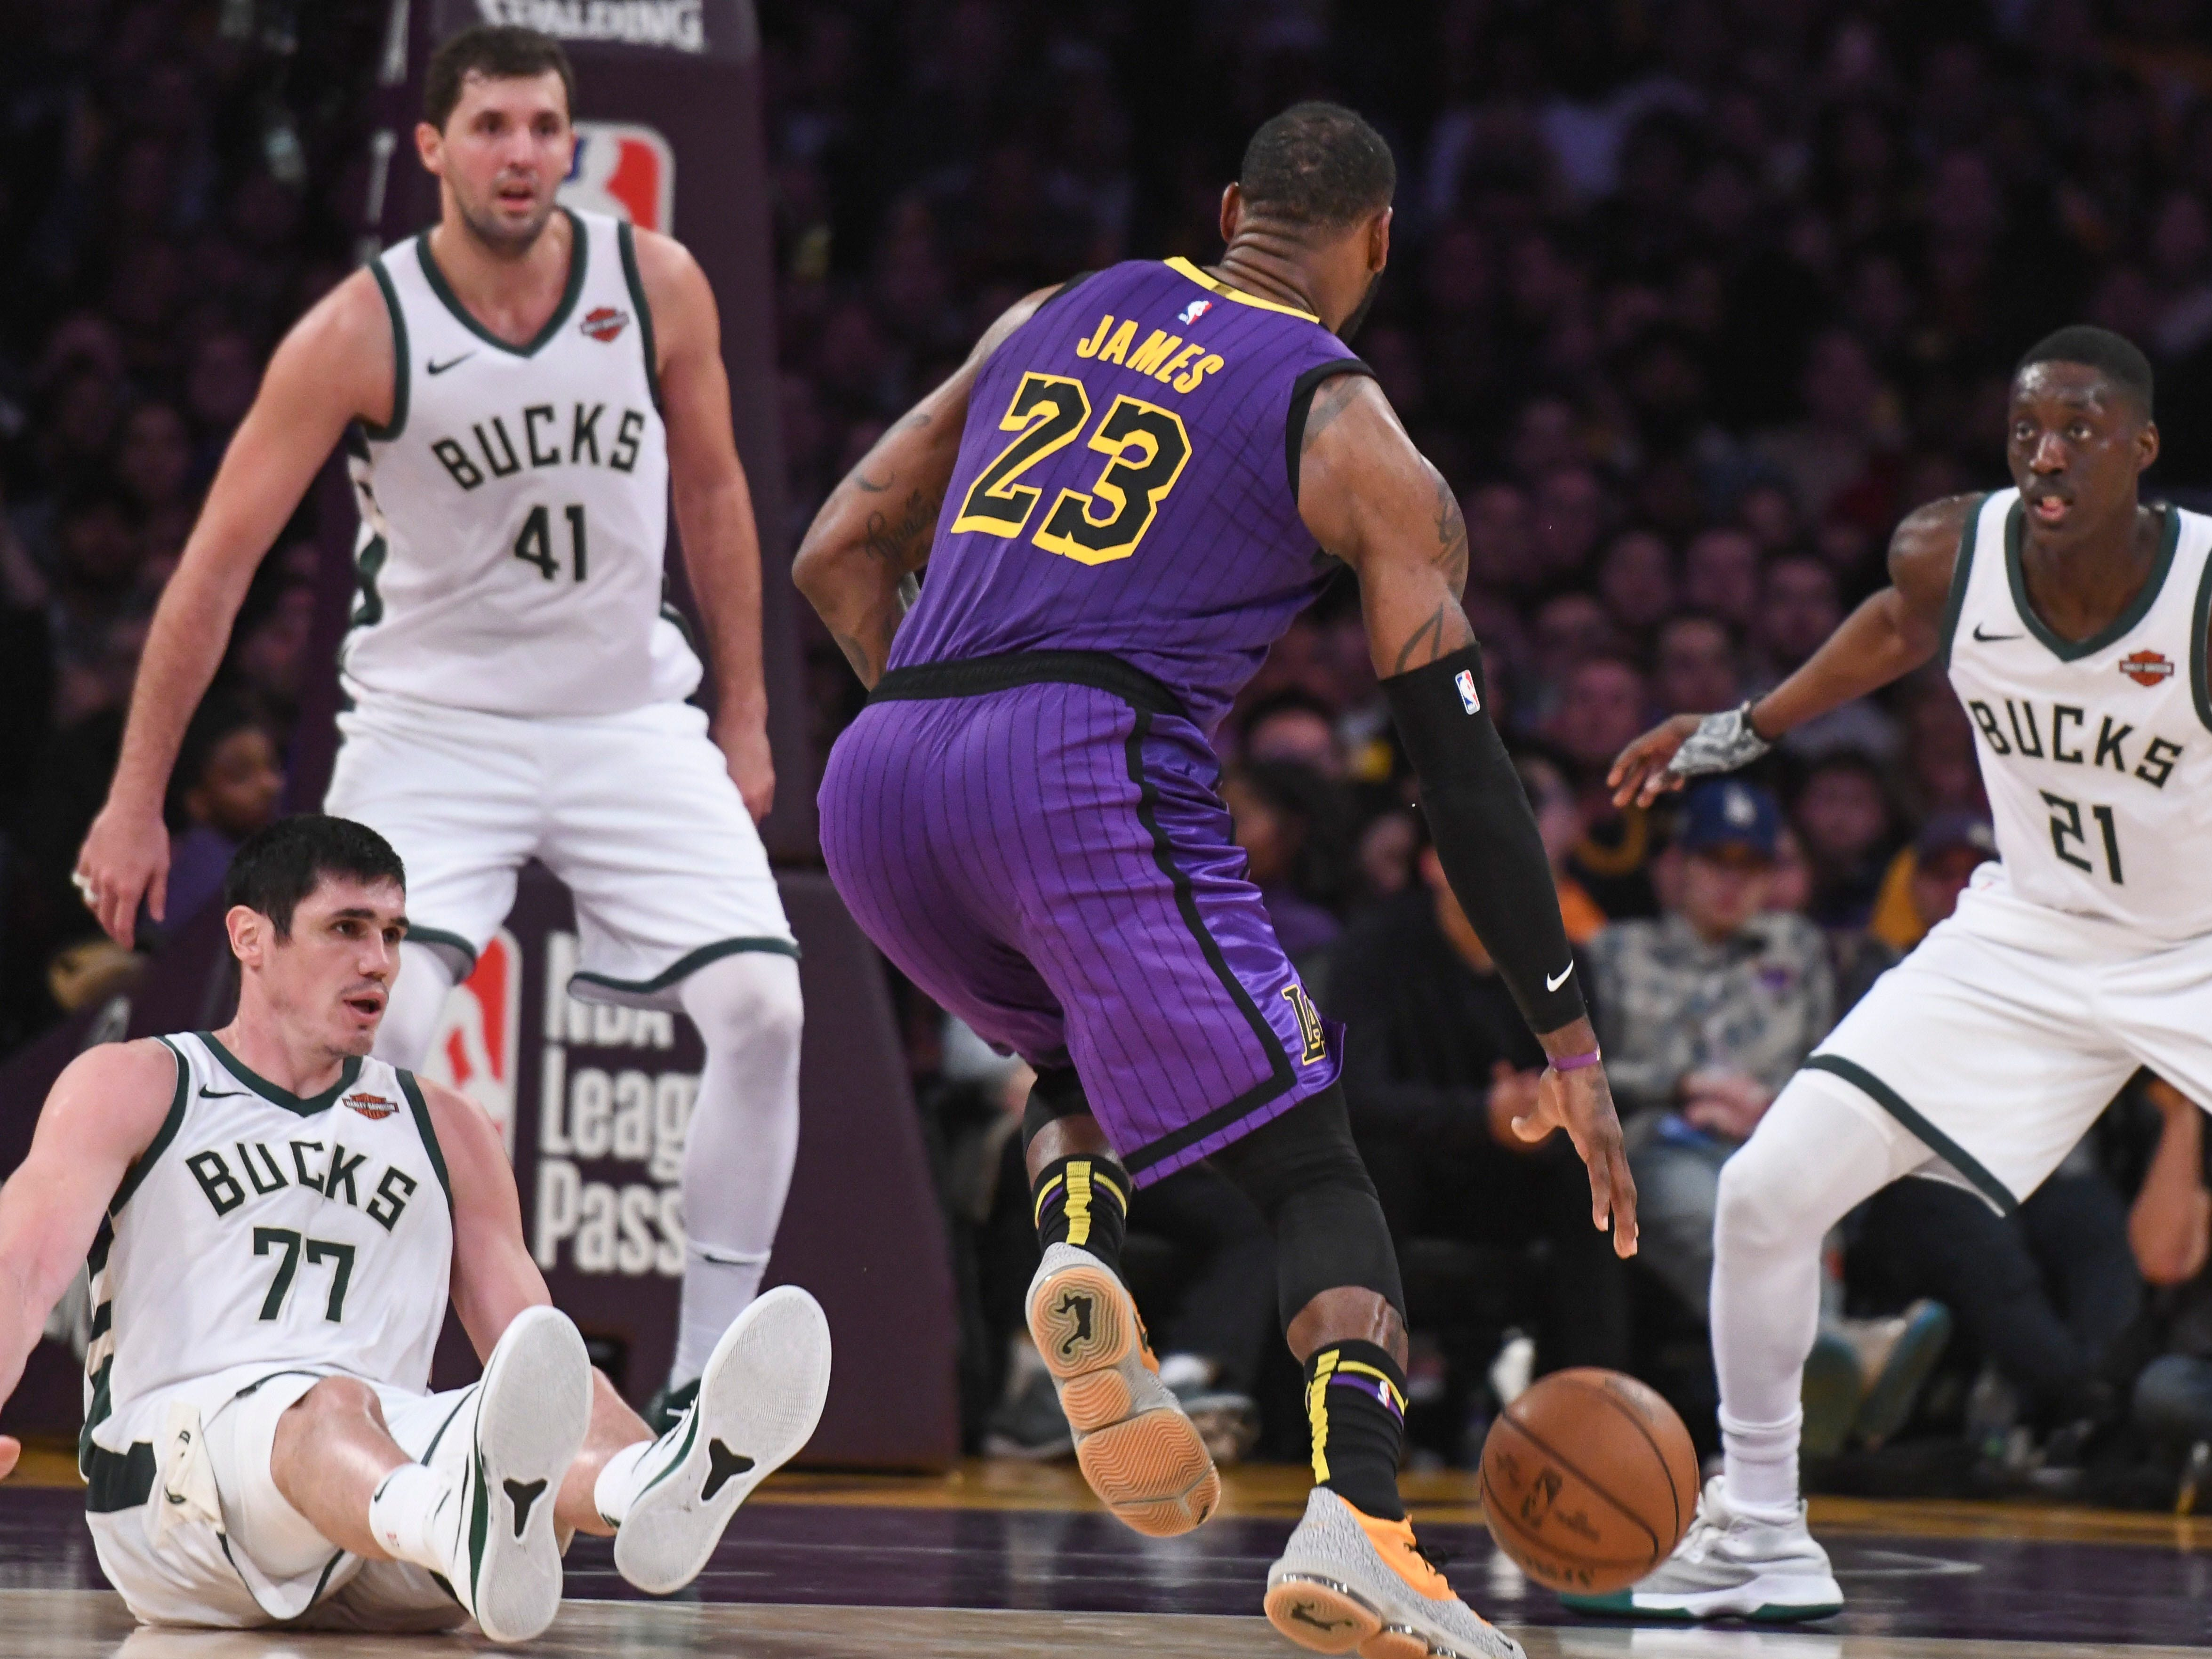 Lakers forward LeBron James sends Ersan Ilyasova of the Bucks to the floor as he drives to the rack during the second half.